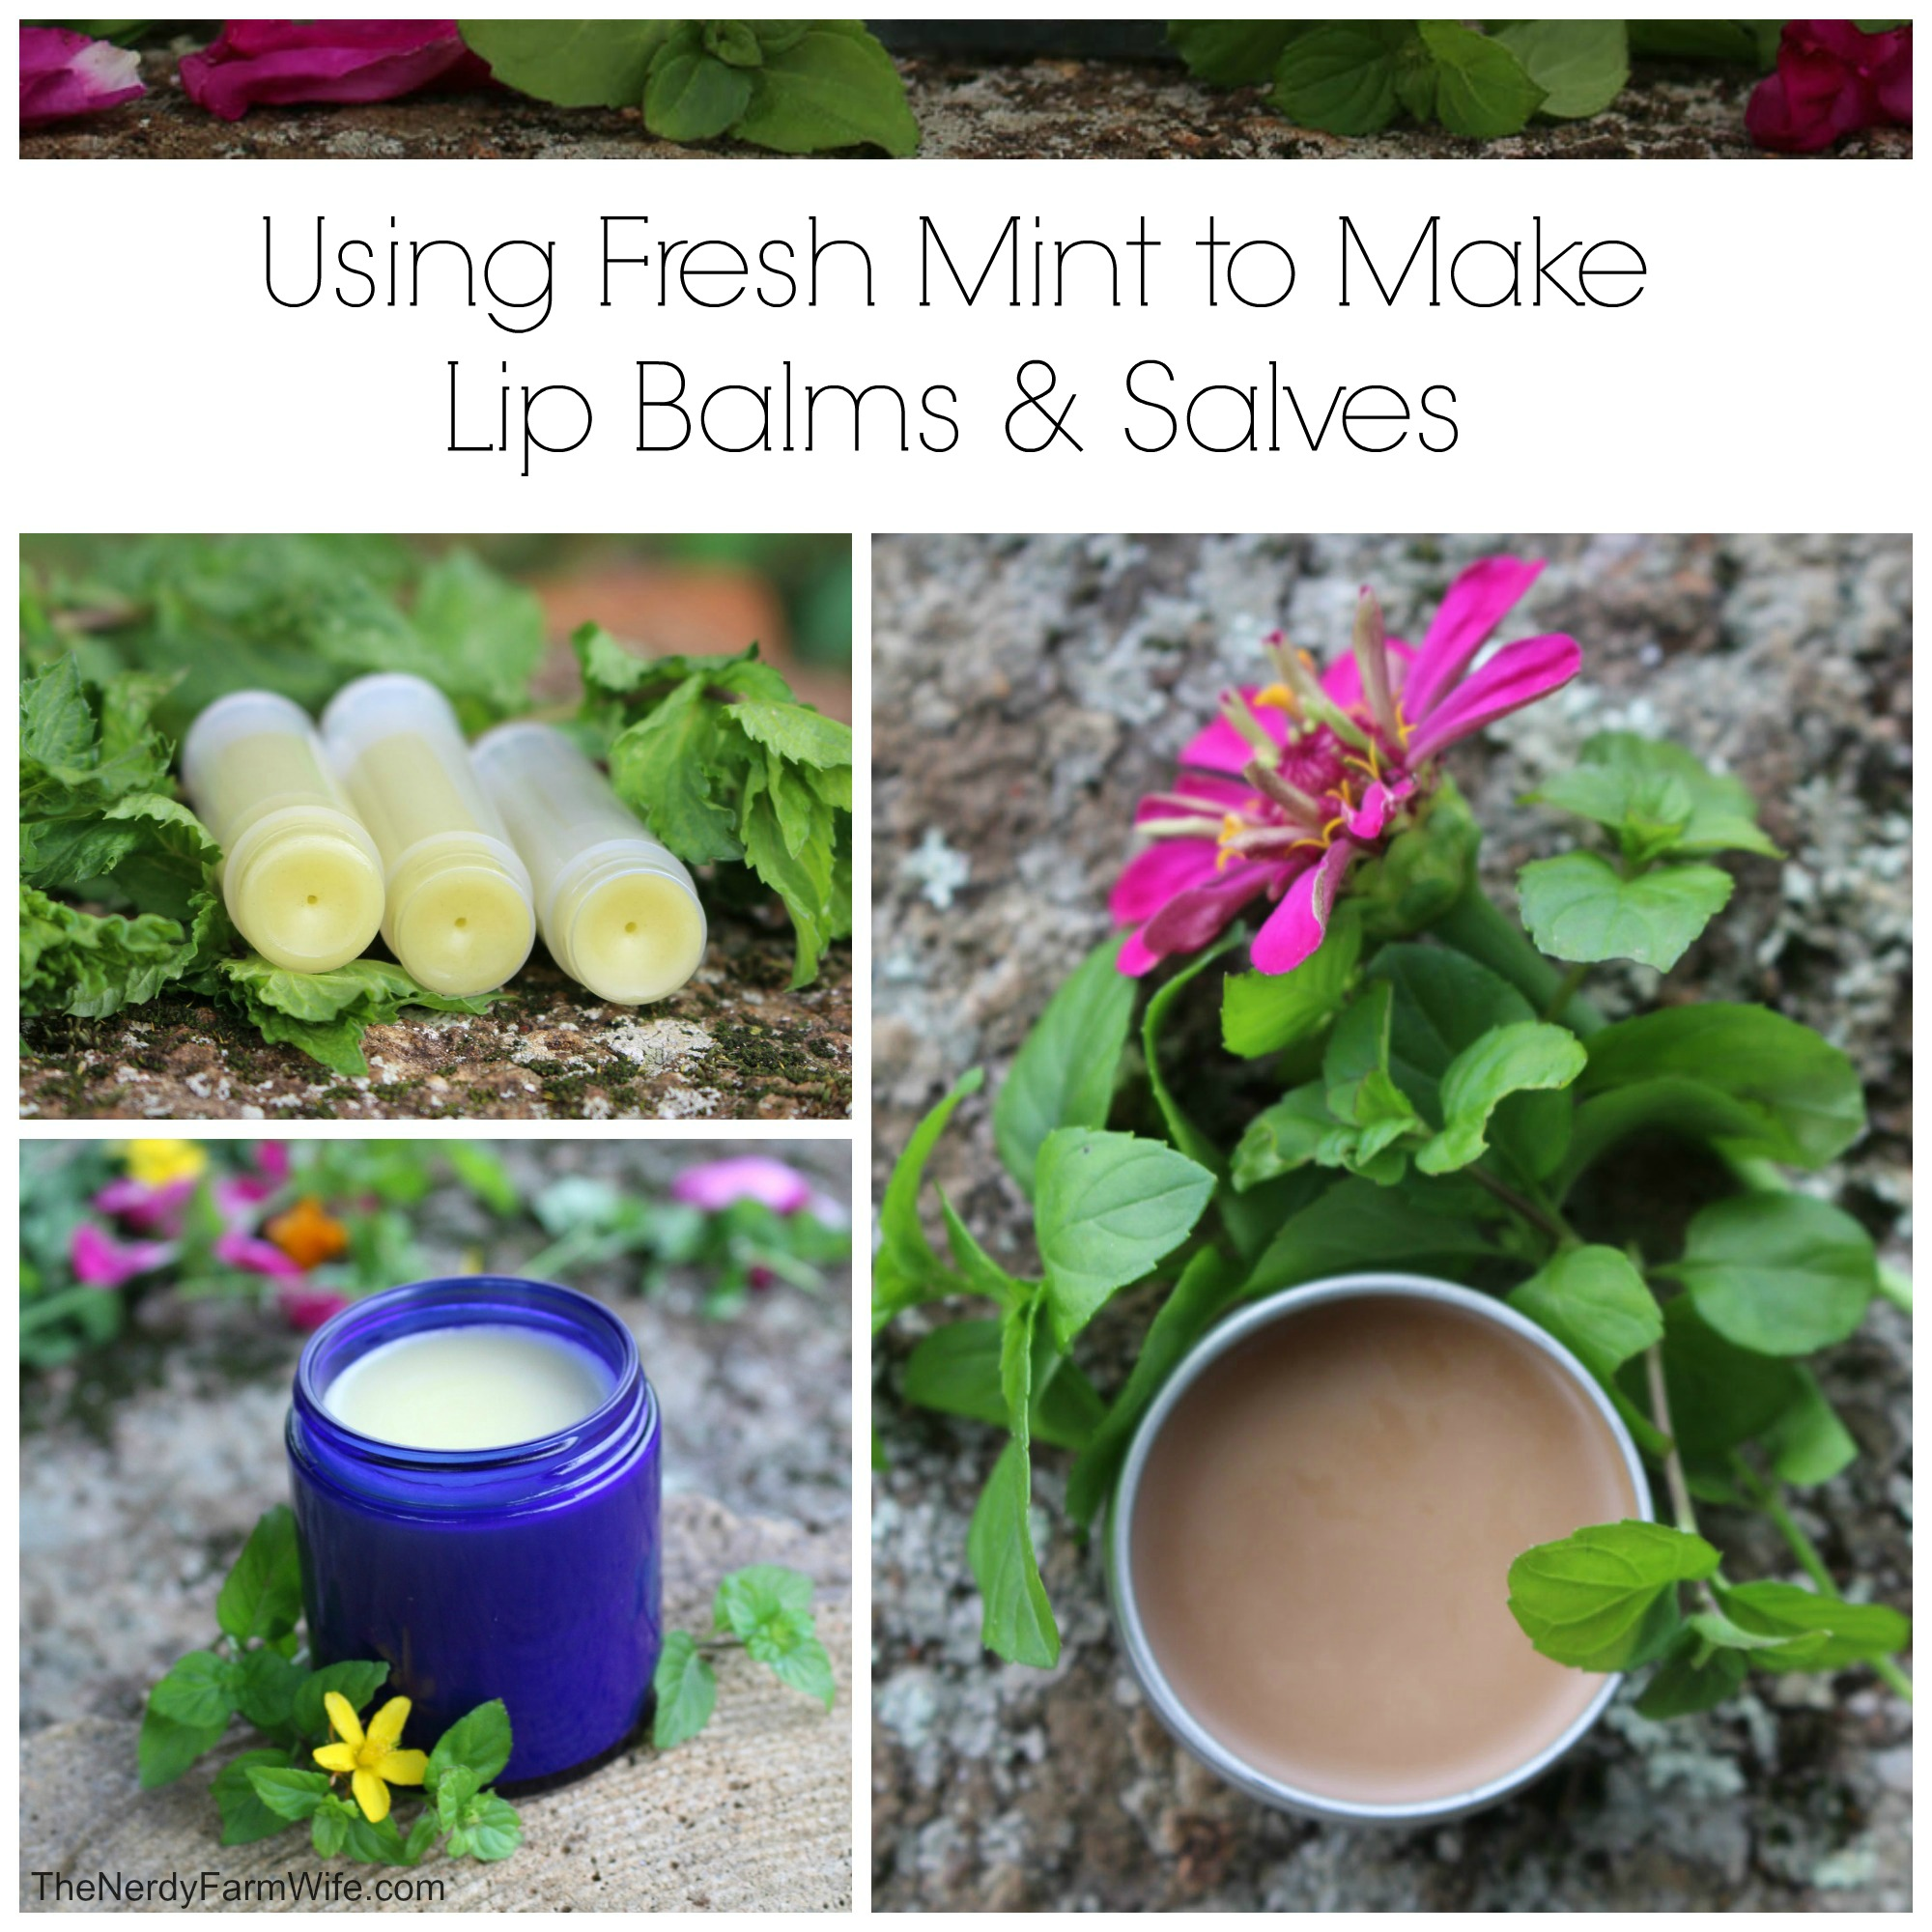 Using Fresh Mint to Make Lip Balm & Salve